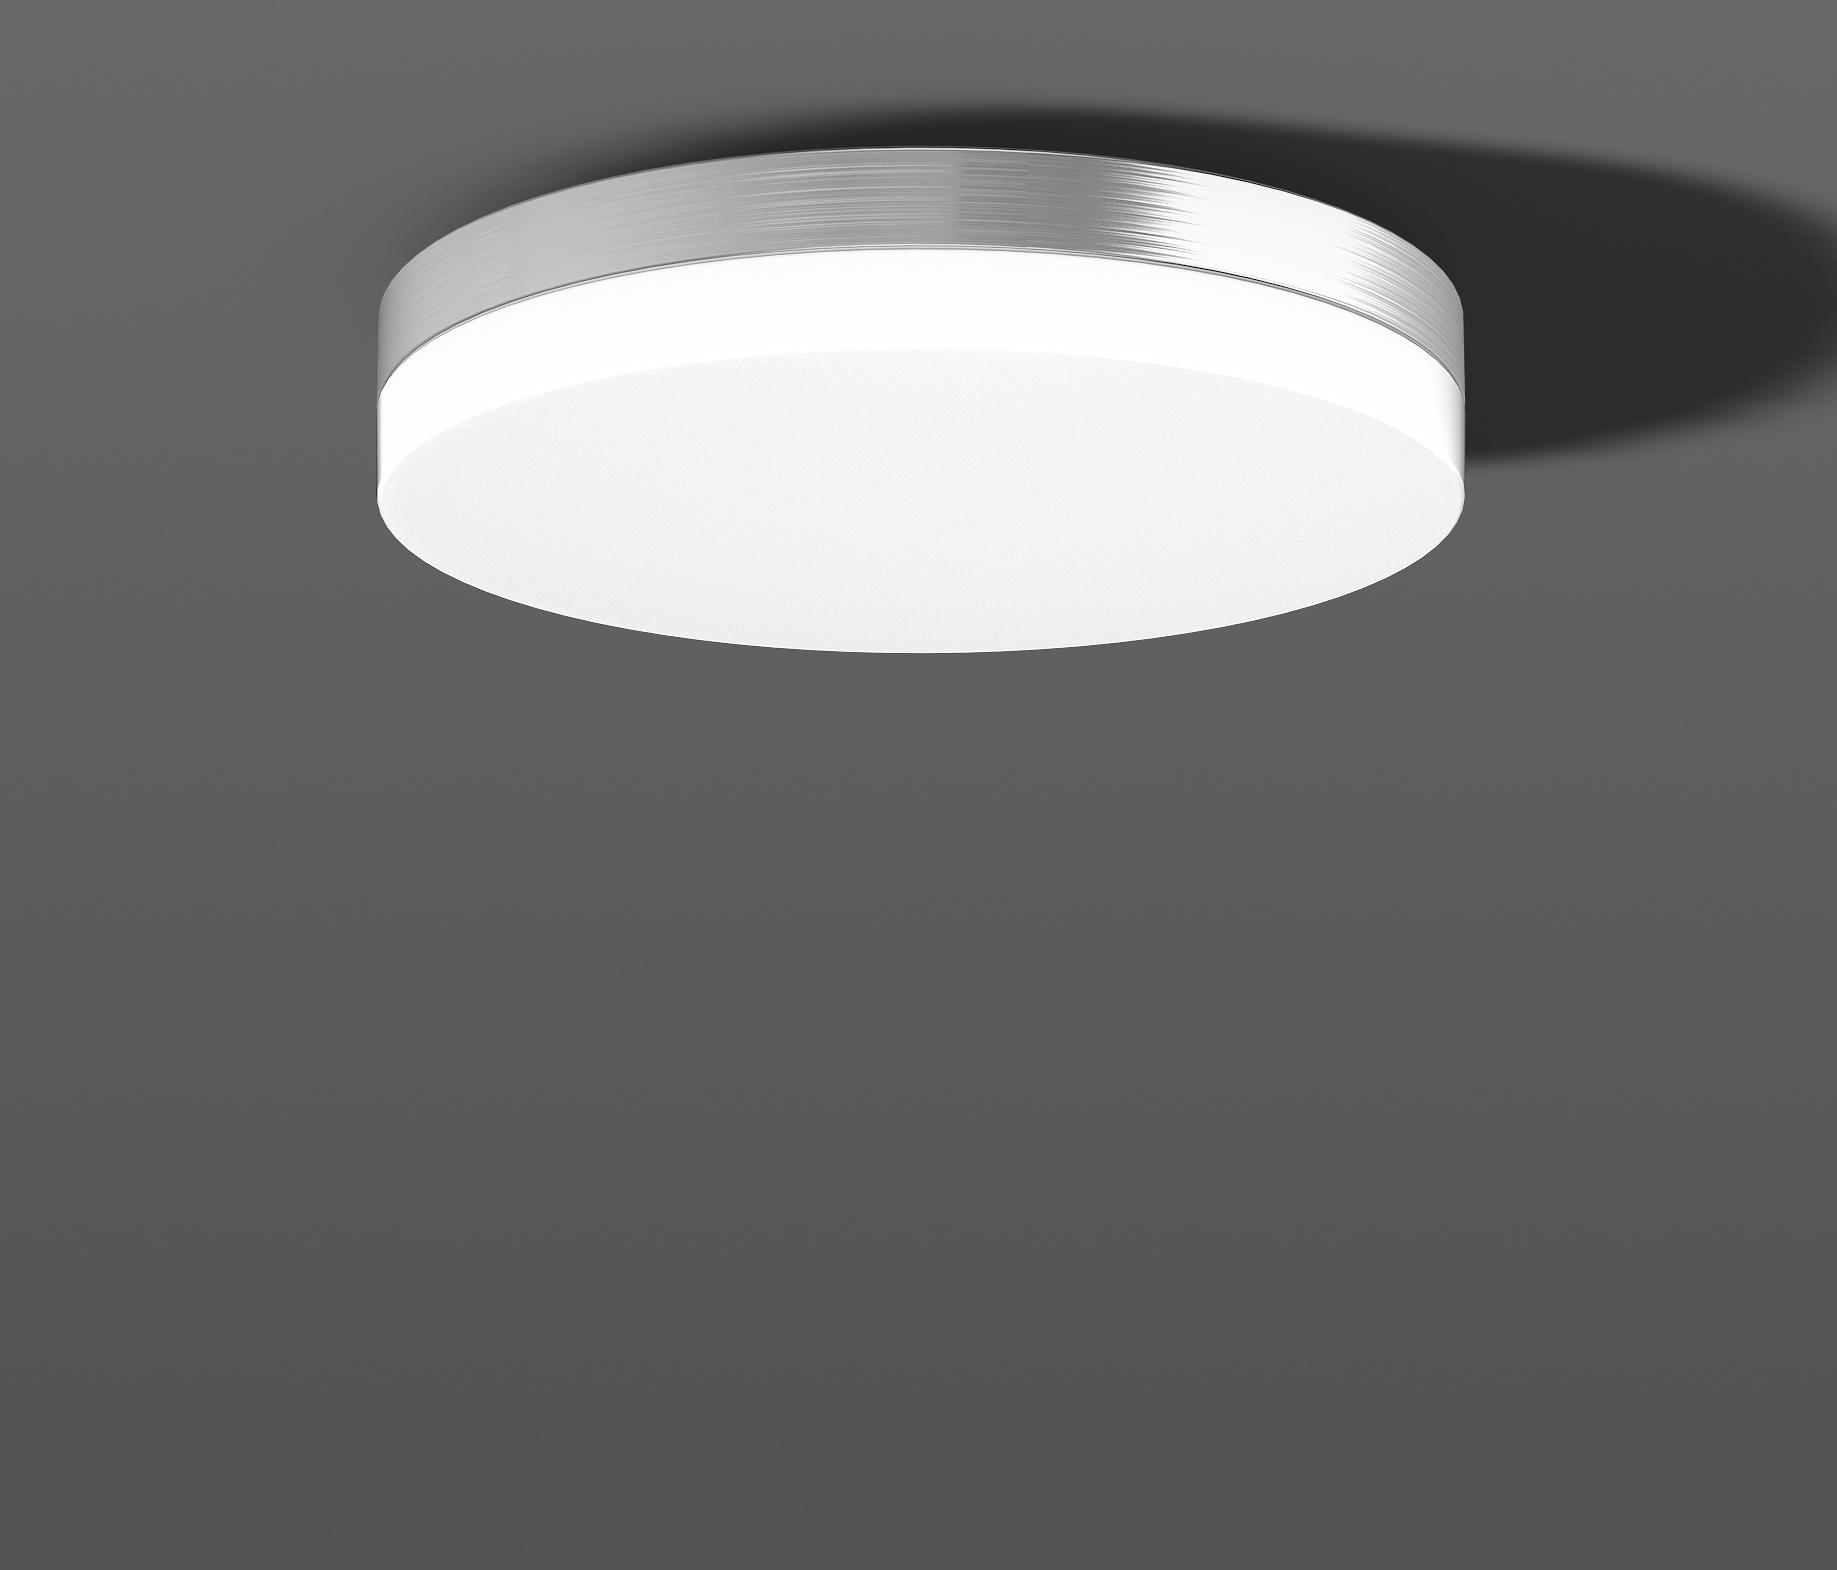 Douala® Slim Ceiling And Wall Luminaires By RZB   Leuchten | Wall Lights